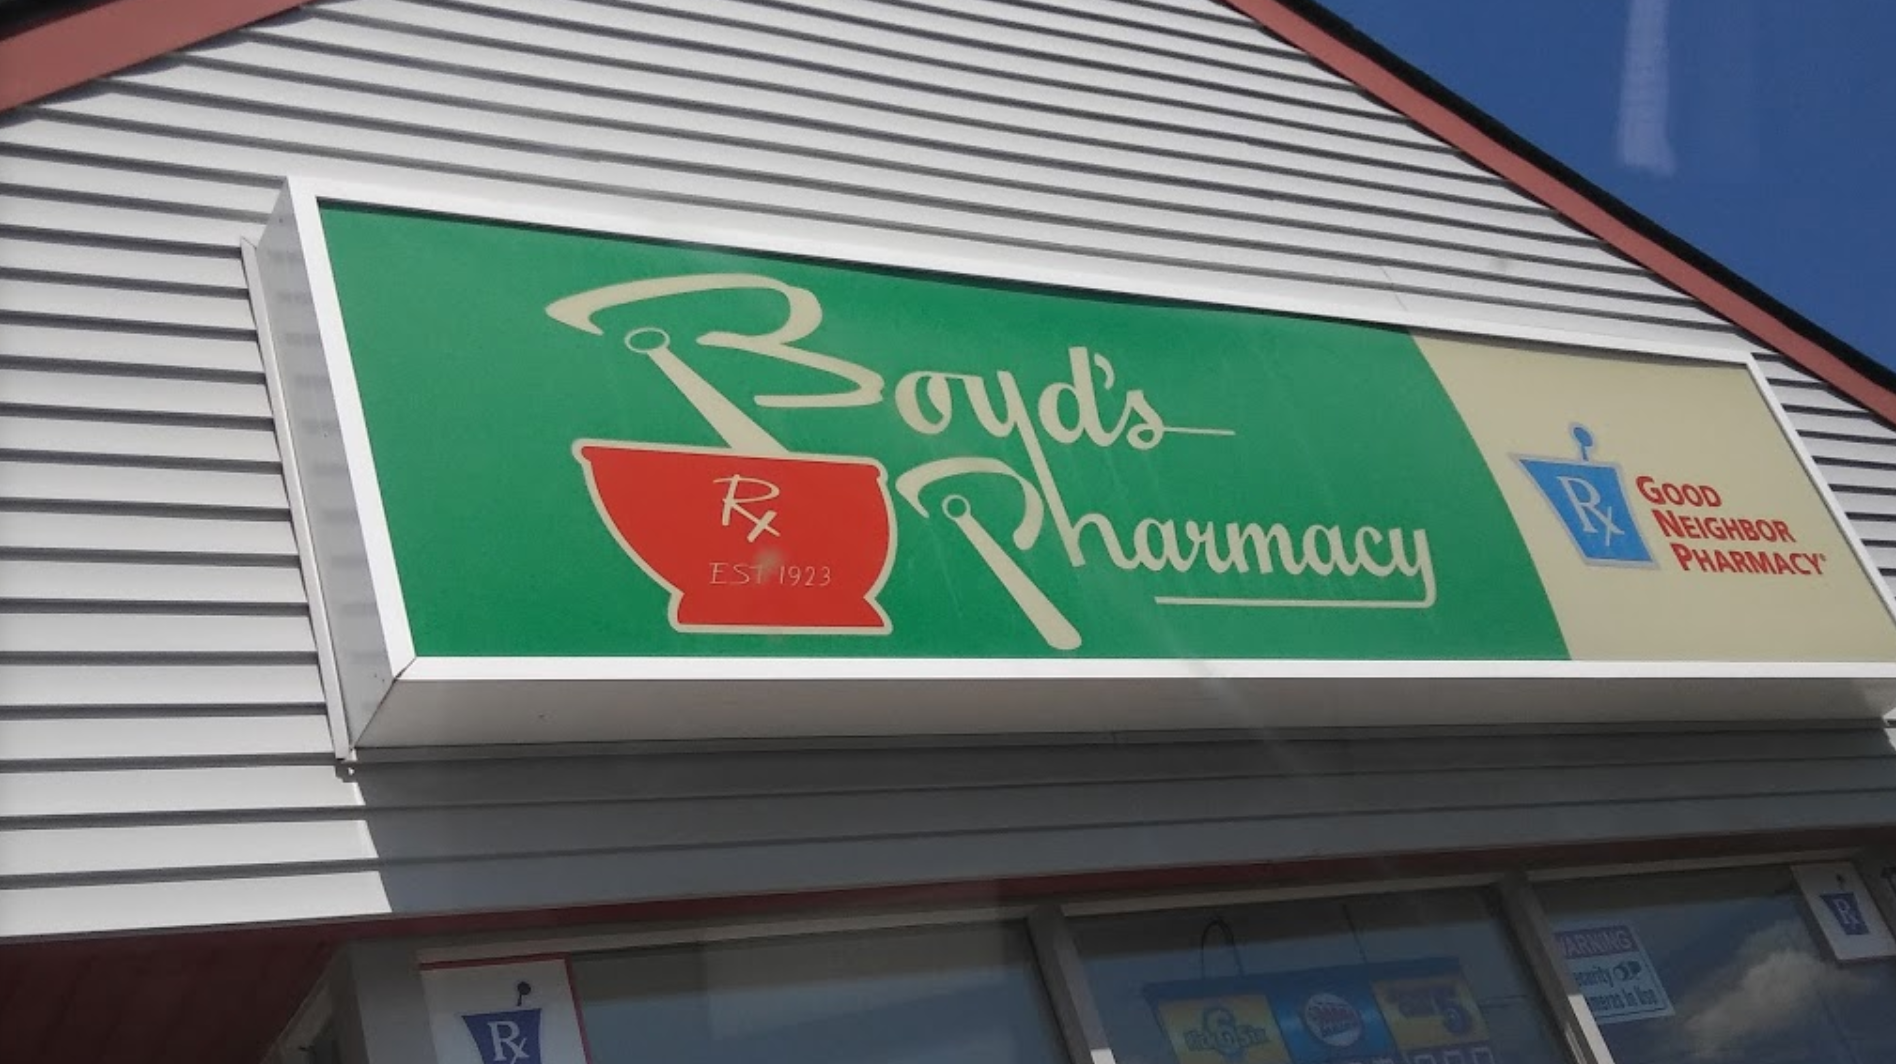 Welcome to Boyd's Pharmacy of Pemberton